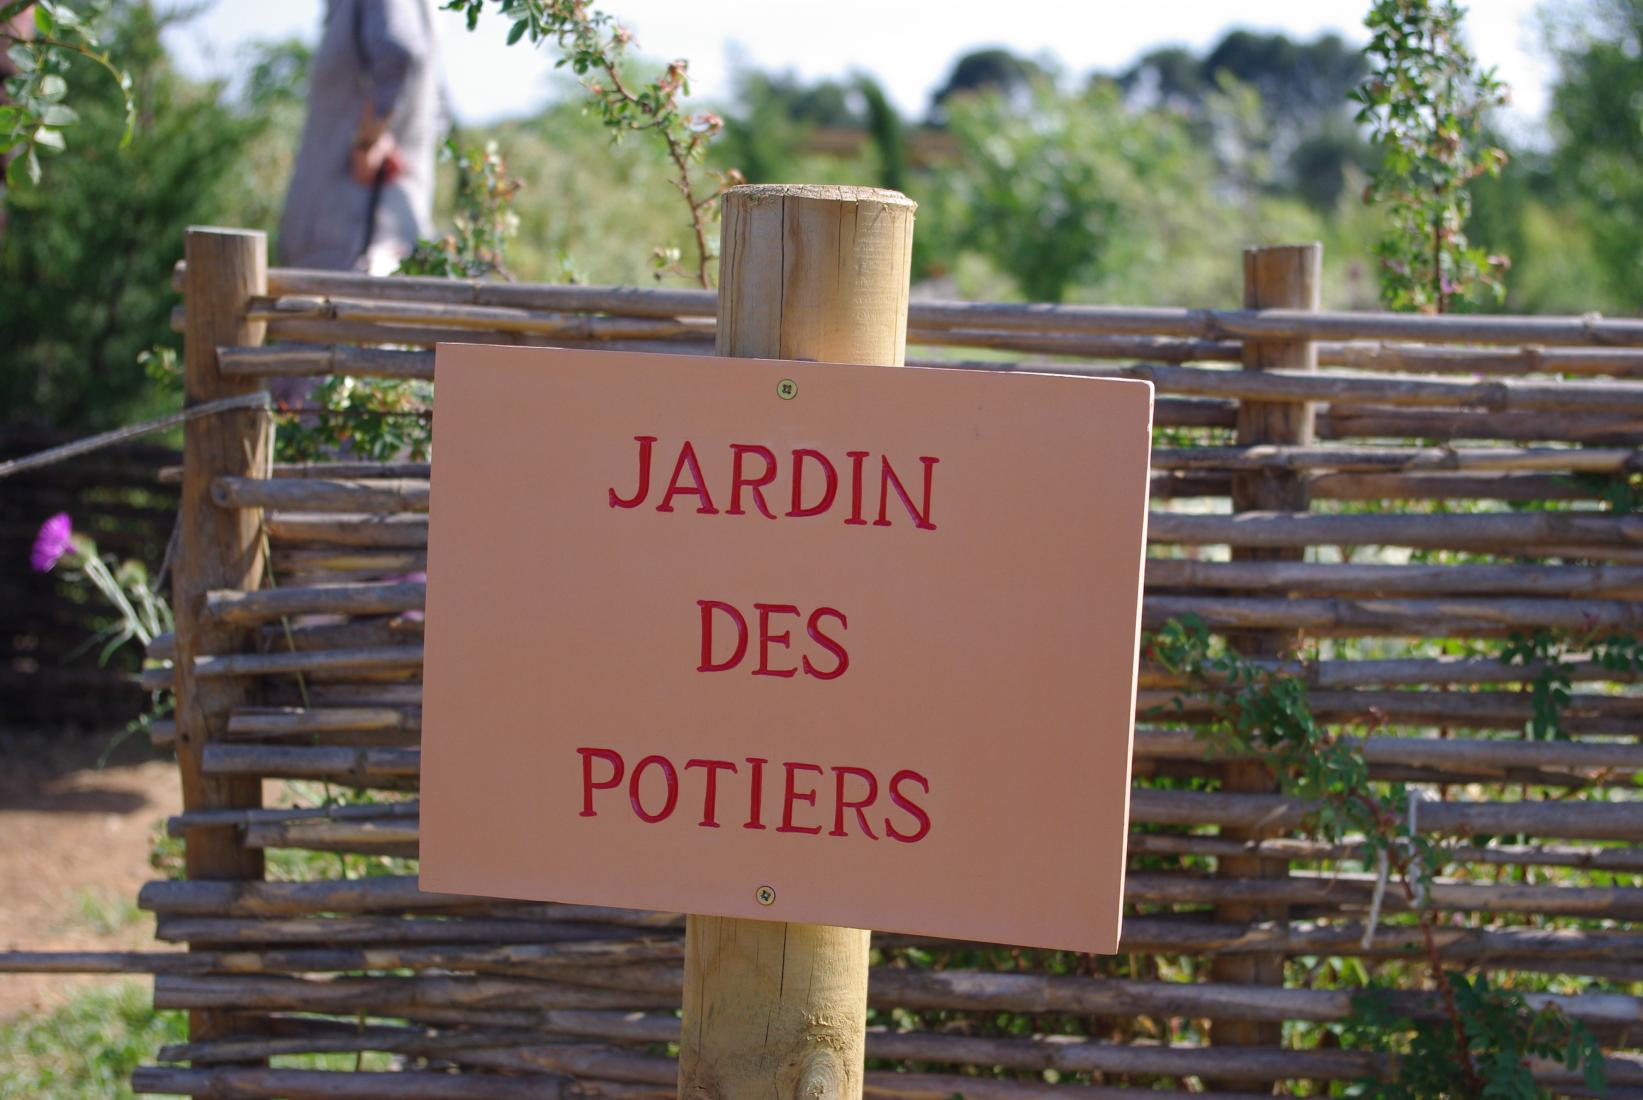 Jardin gallo-romain à Amphoralis